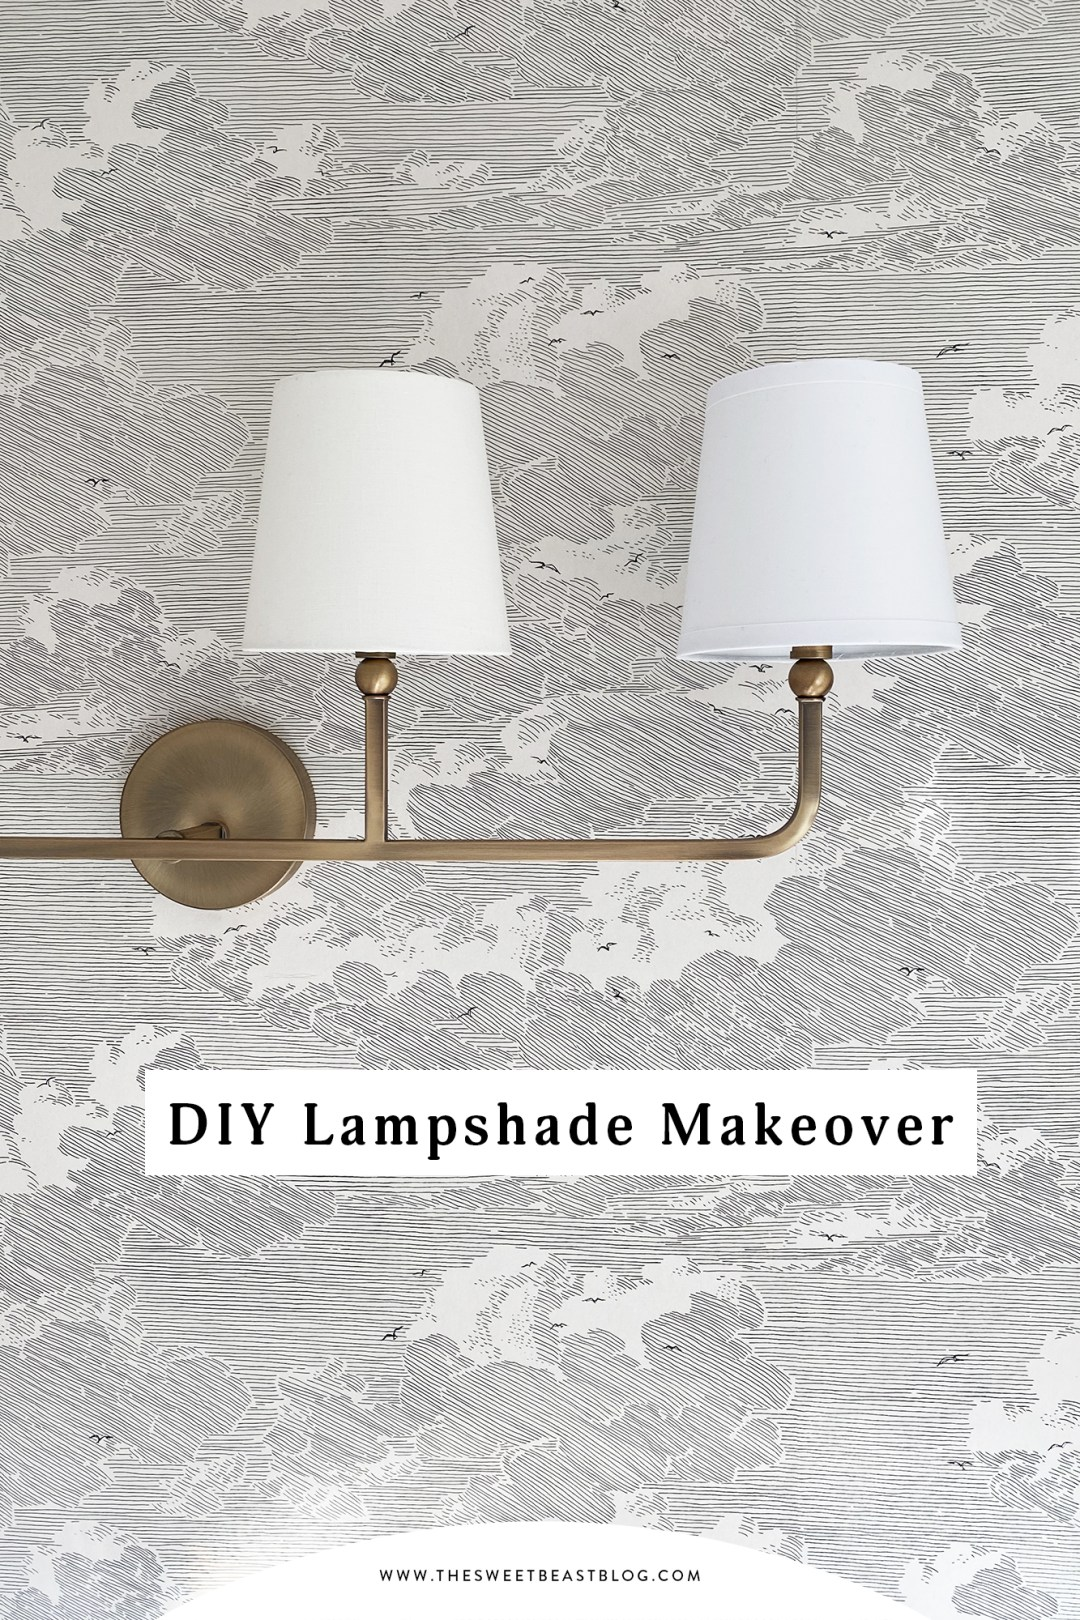 Lampshade Makeover DIY